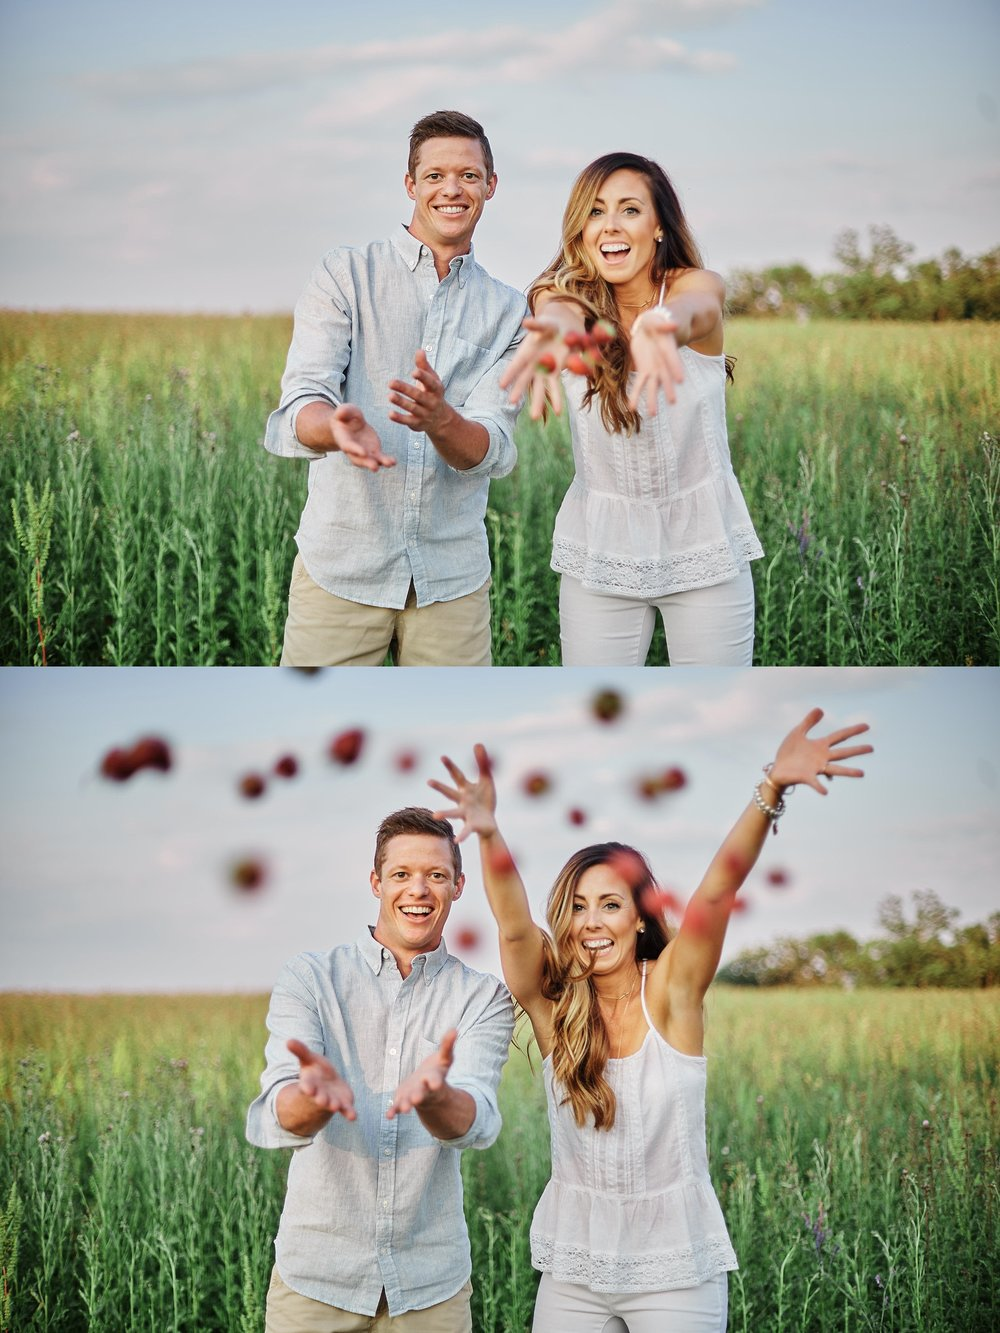 Strawberry-Farm-Engagement-Session-Alexandria-Minnesota-Outdoor_0206.jpg